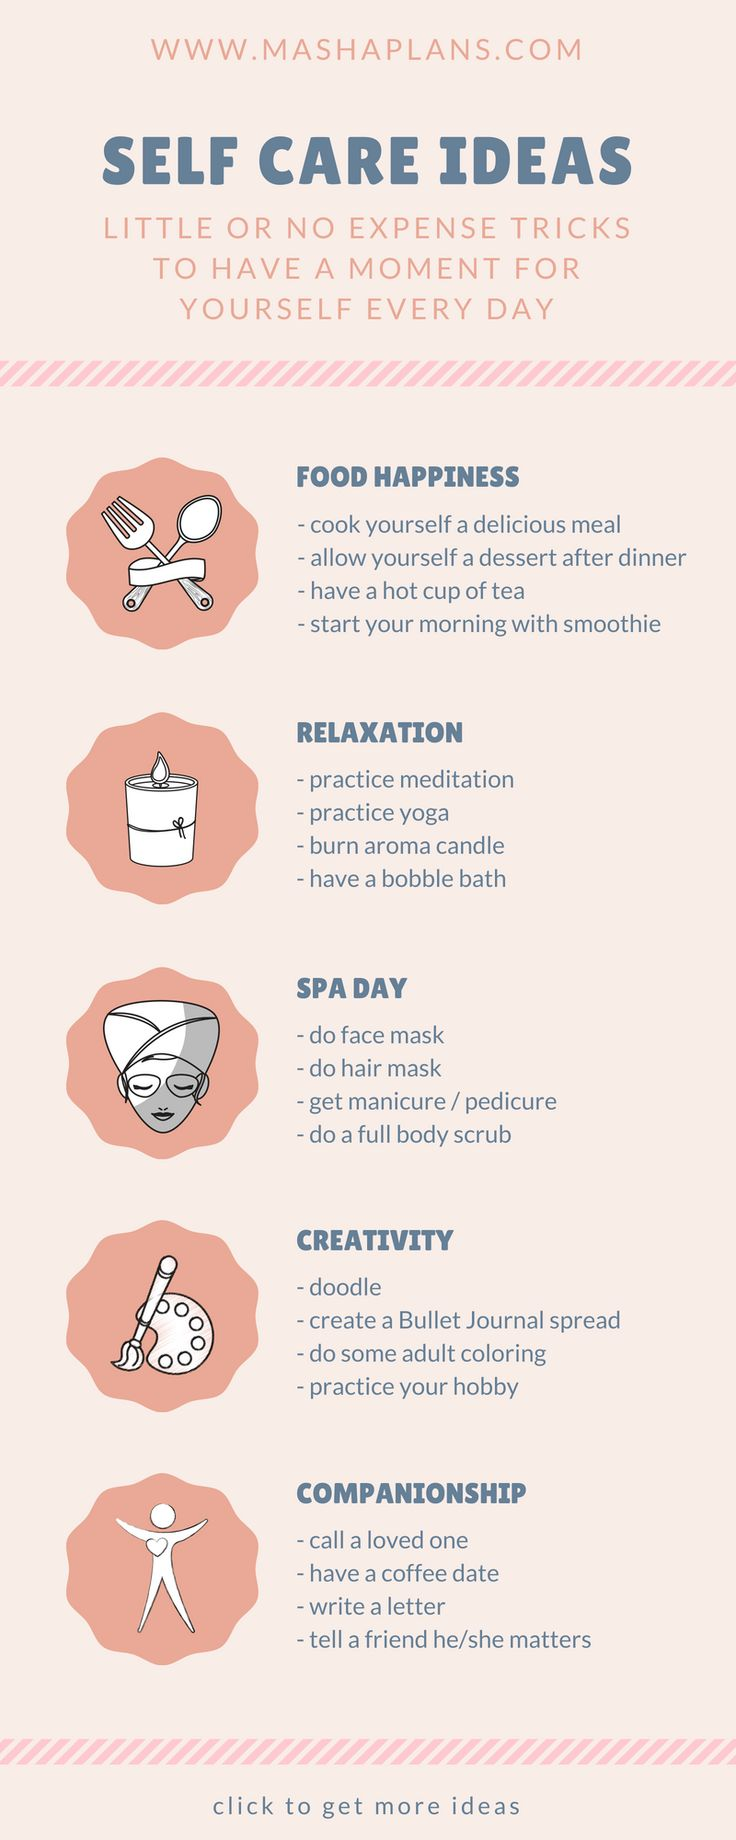 50 ideas for little moments of self care every day click